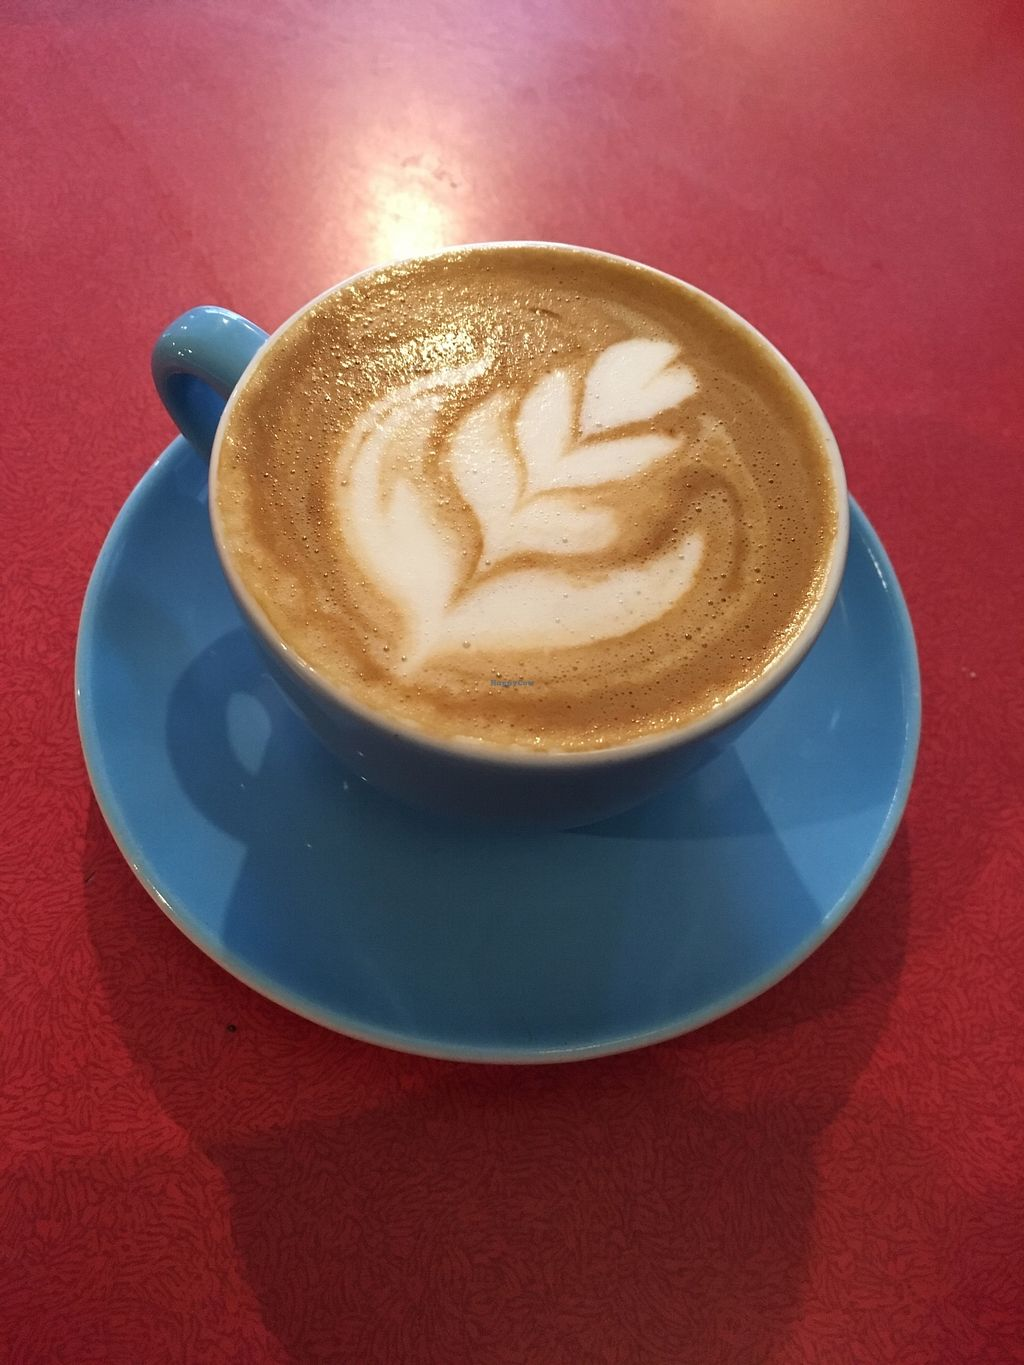 """Photo of The Bagelry   by <a href=""""/members/profile/avocado_jess"""">avocado_jess</a> <br/>Flat white with oat milk <br/> April 15, 2018  - <a href='/contact/abuse/image/67526/386181'>Report</a>"""